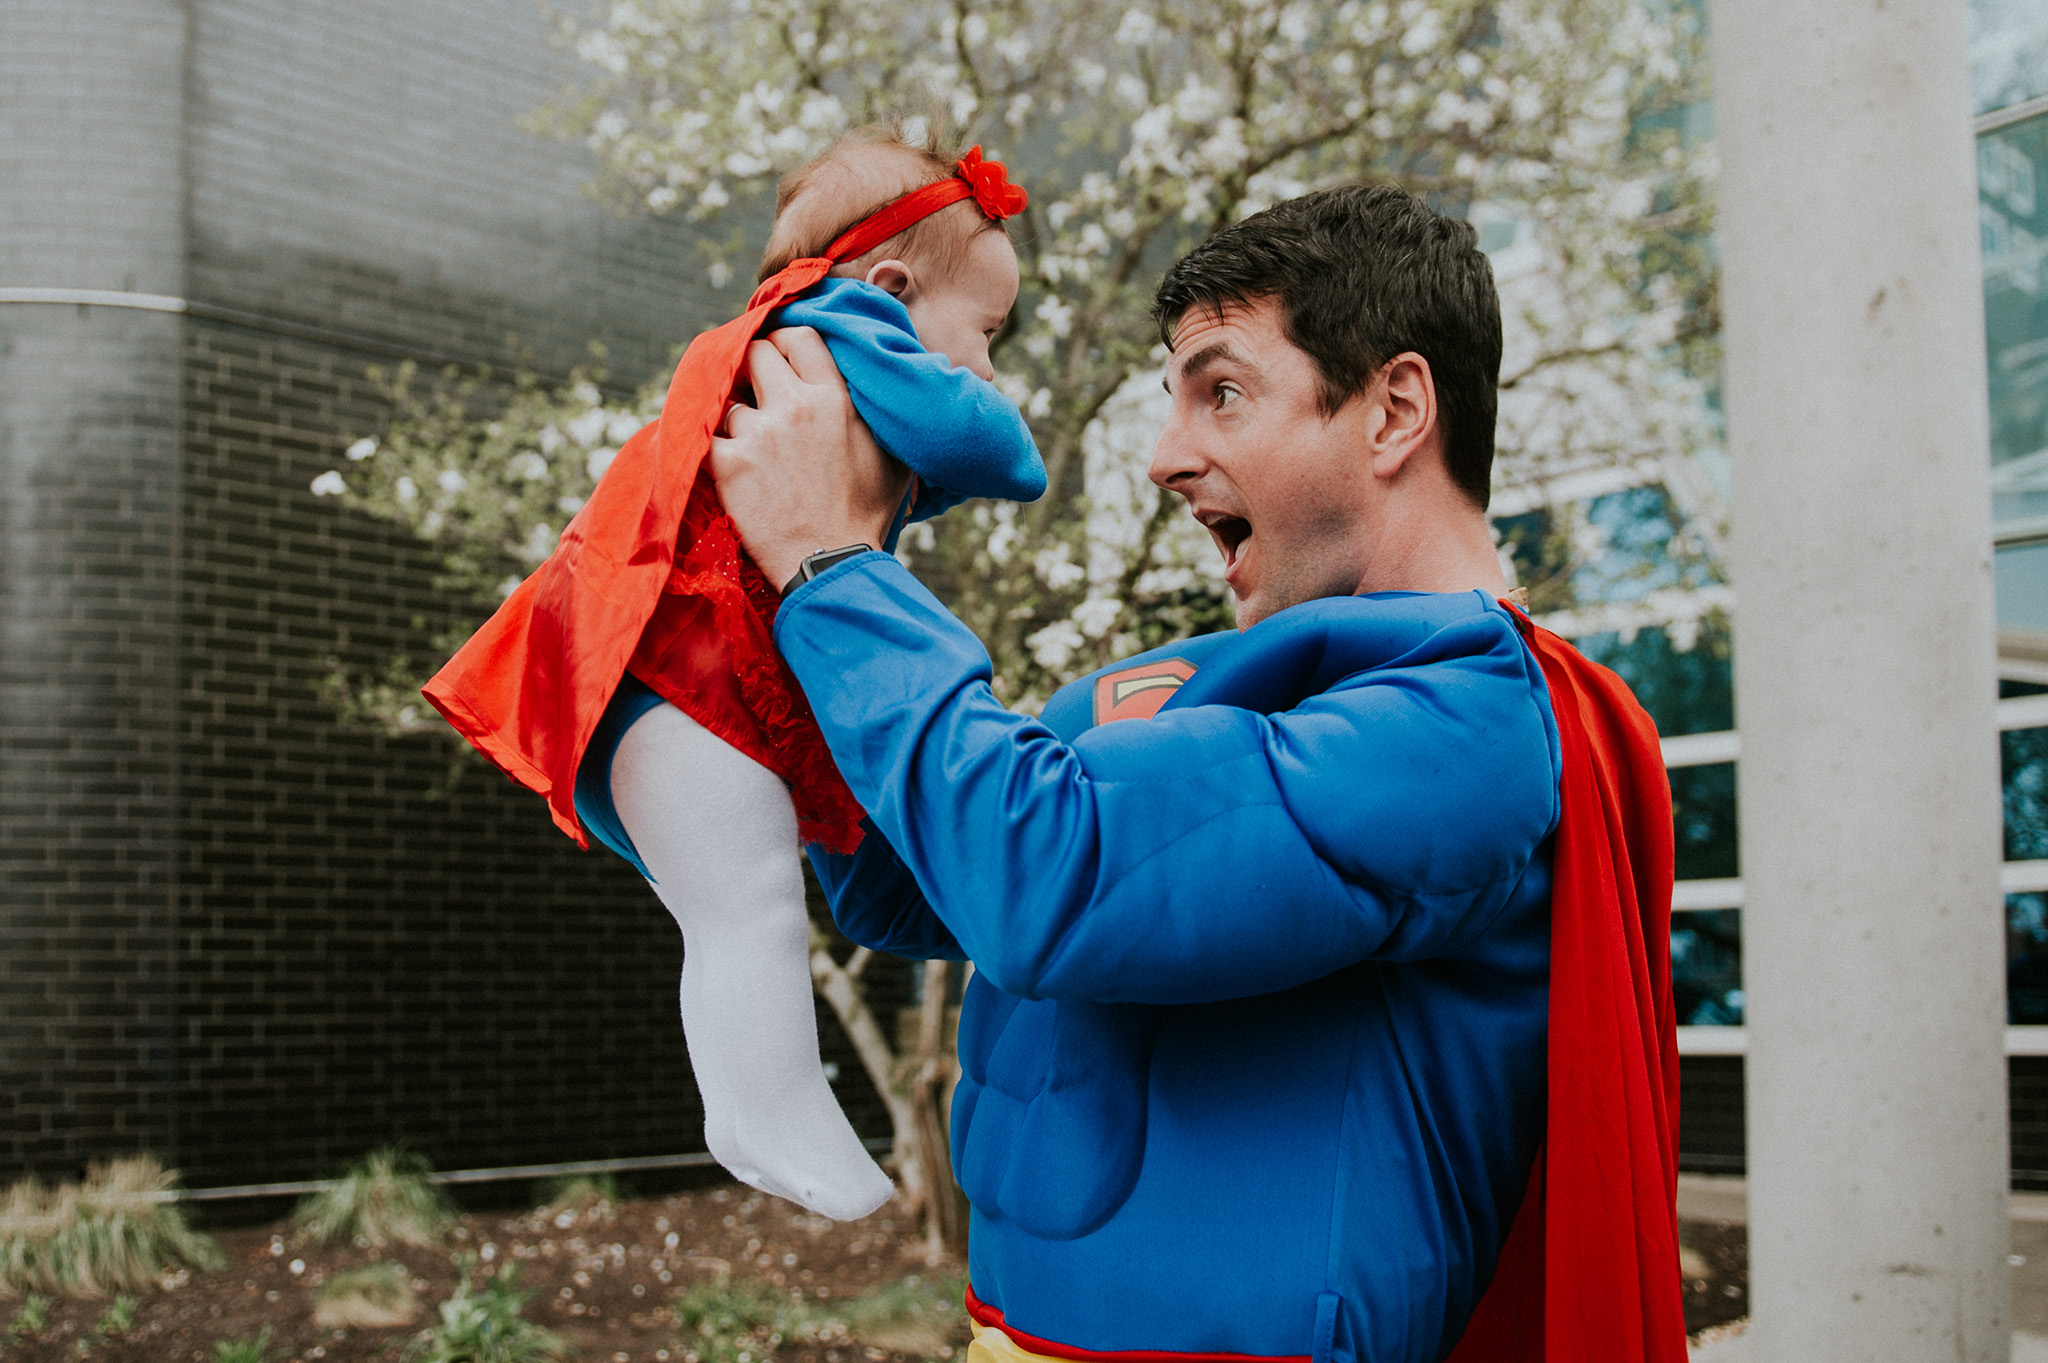 April 27: Superhero Day at work, and my first fresh 48 client in Connecticut teamed up with one of our docs.